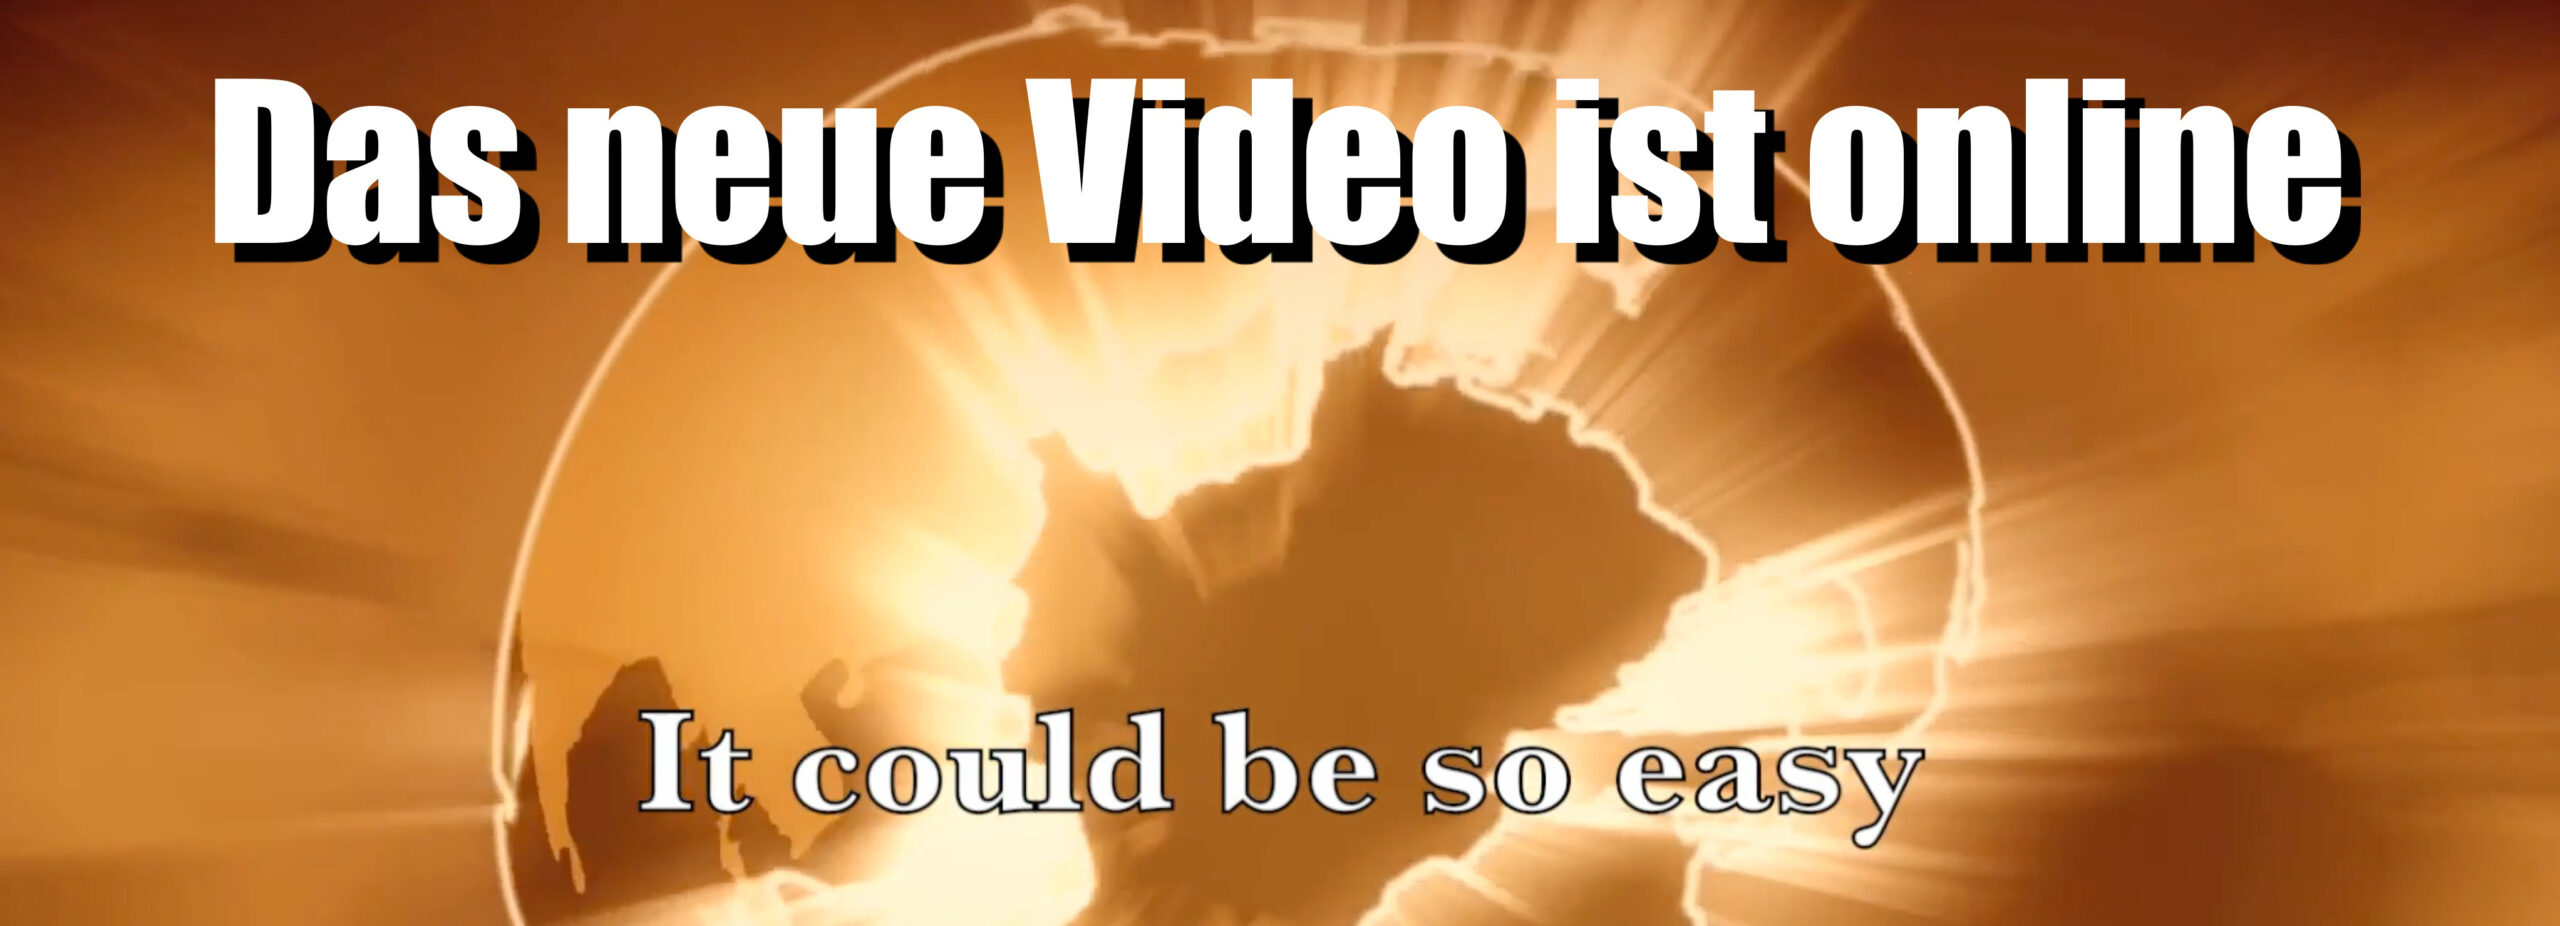 It could be so easy Video online